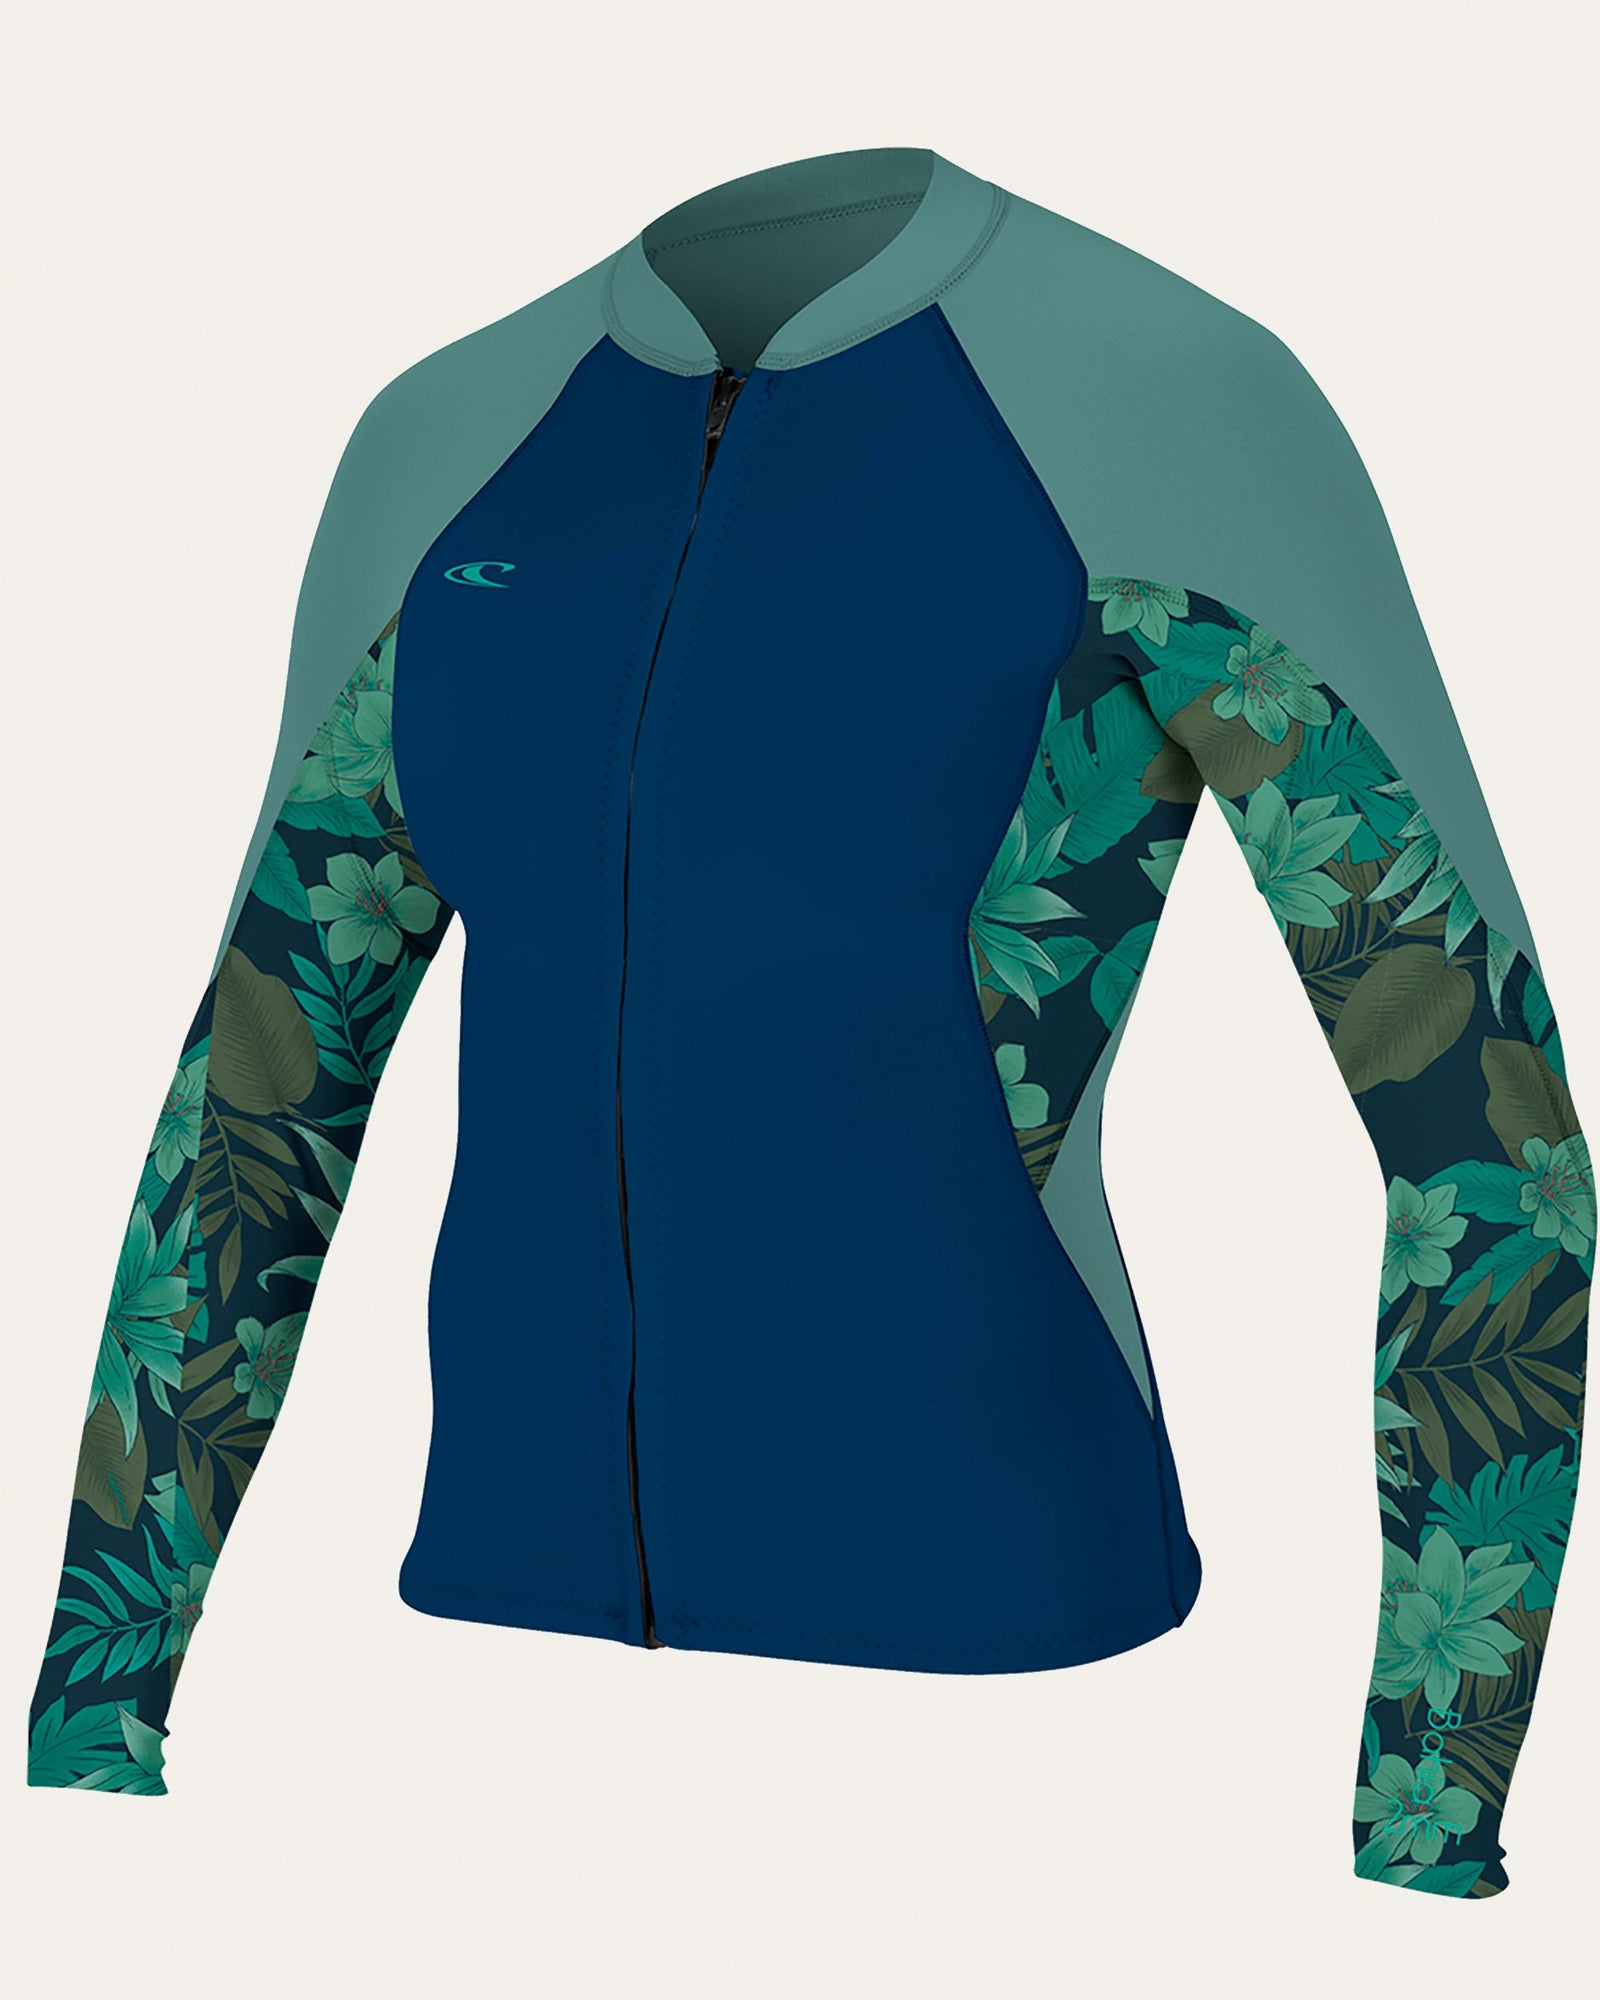 O'Neill Bahia 1.5mm Women's Front Zip Wetsuit Jacket